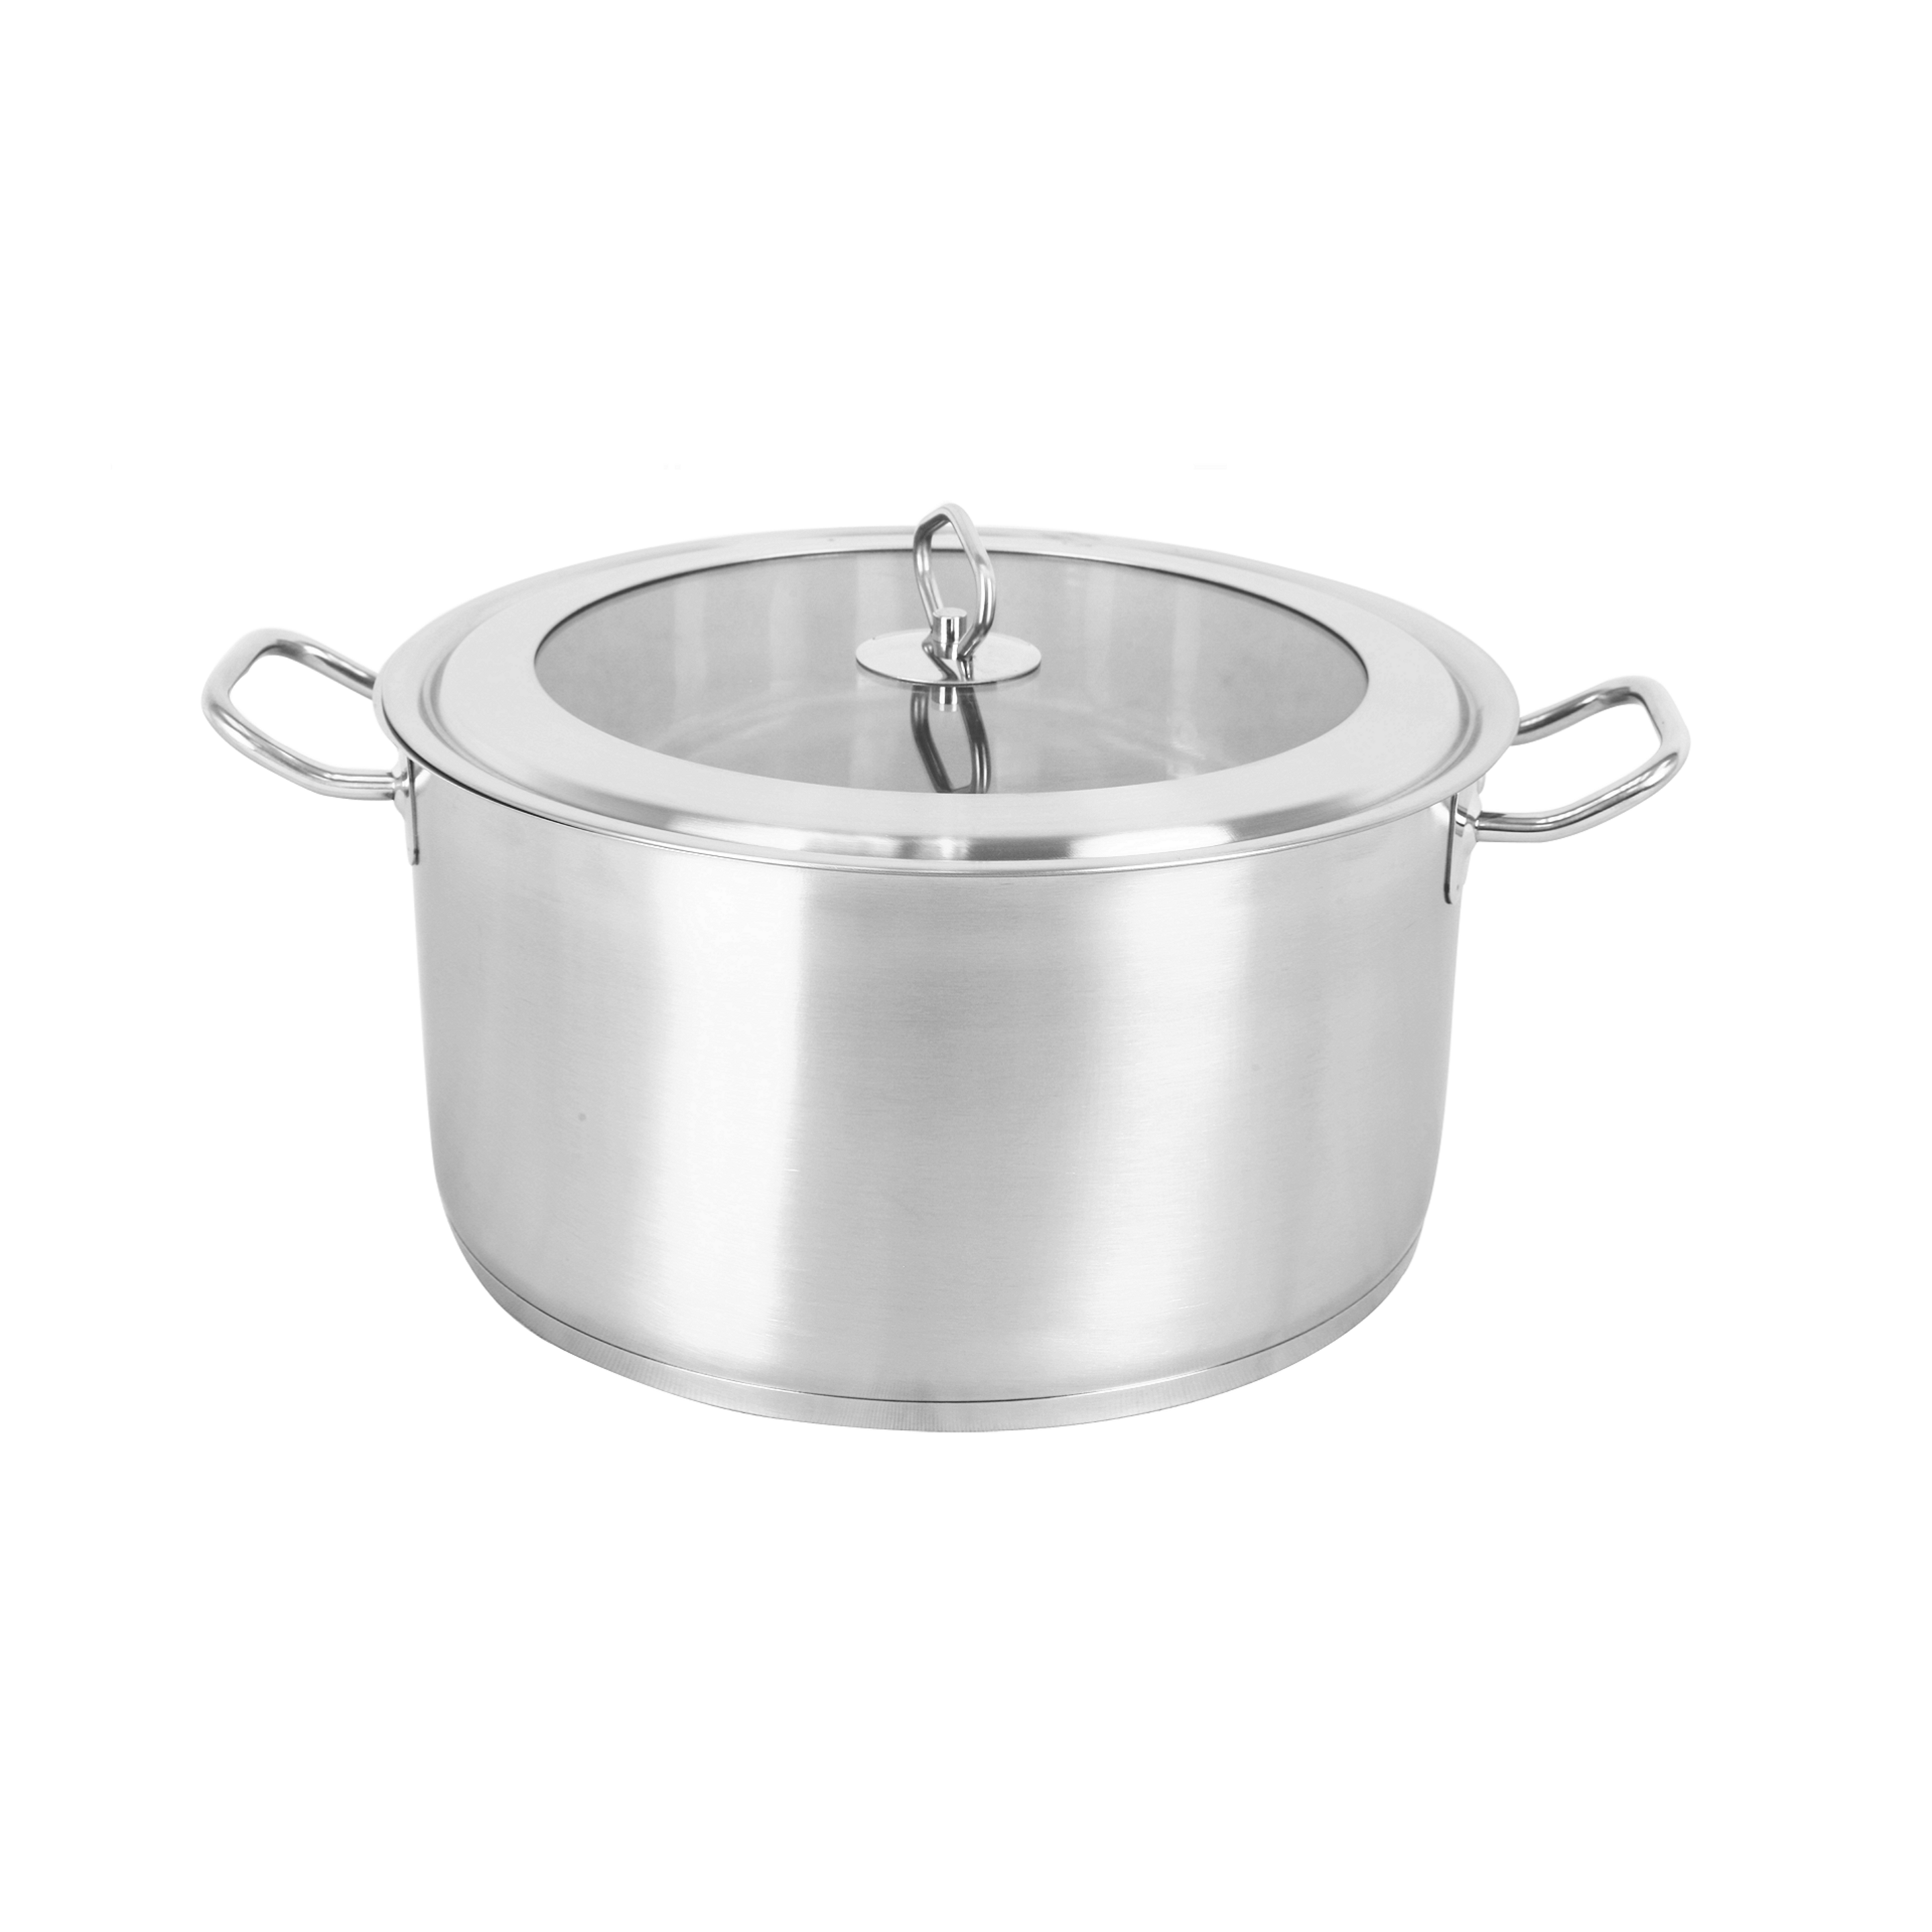 GOLDSUN _ Stainless steel cookware and cooking pot and stainless steel pot has 3 bottom GDM 10-F24 from Vietnam